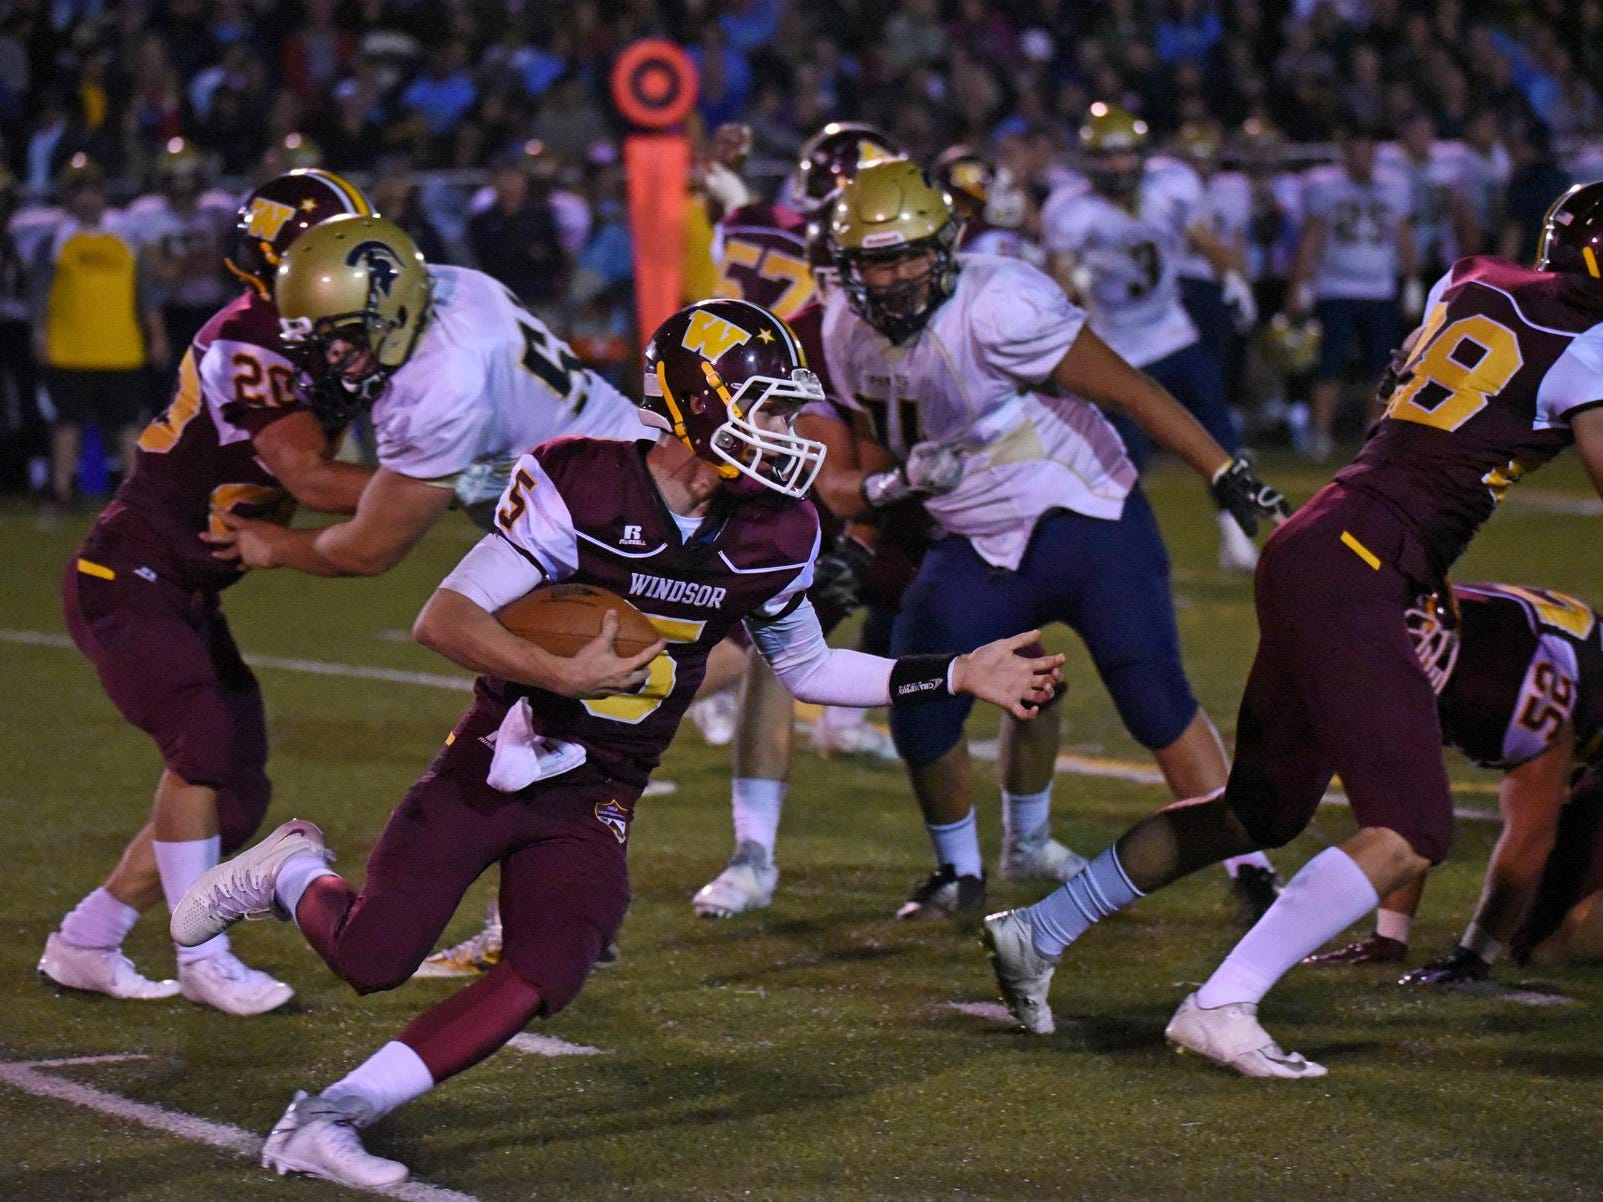 Windsor quarterback Brad Peeples is shown during the Wizards' game against Greeley West last week. Windsor will play at Longmont at 7 p.m. Thursday.